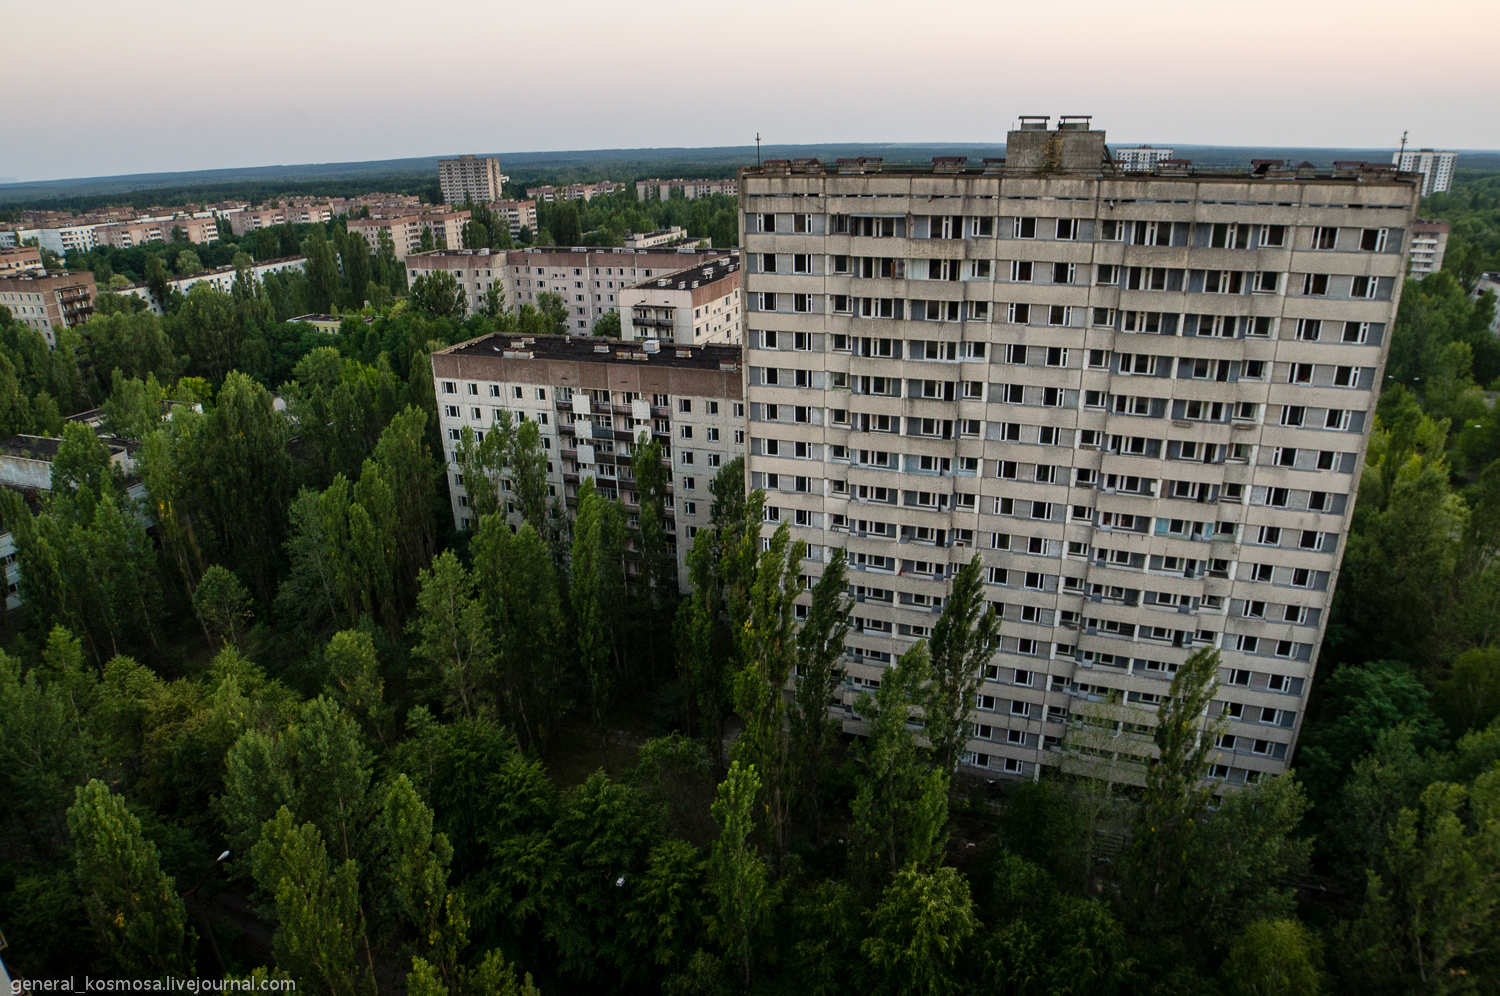 _igp1171 ILLEGAL TOURISM: CHERNOBYL ZONE BY STALKER'S EYES